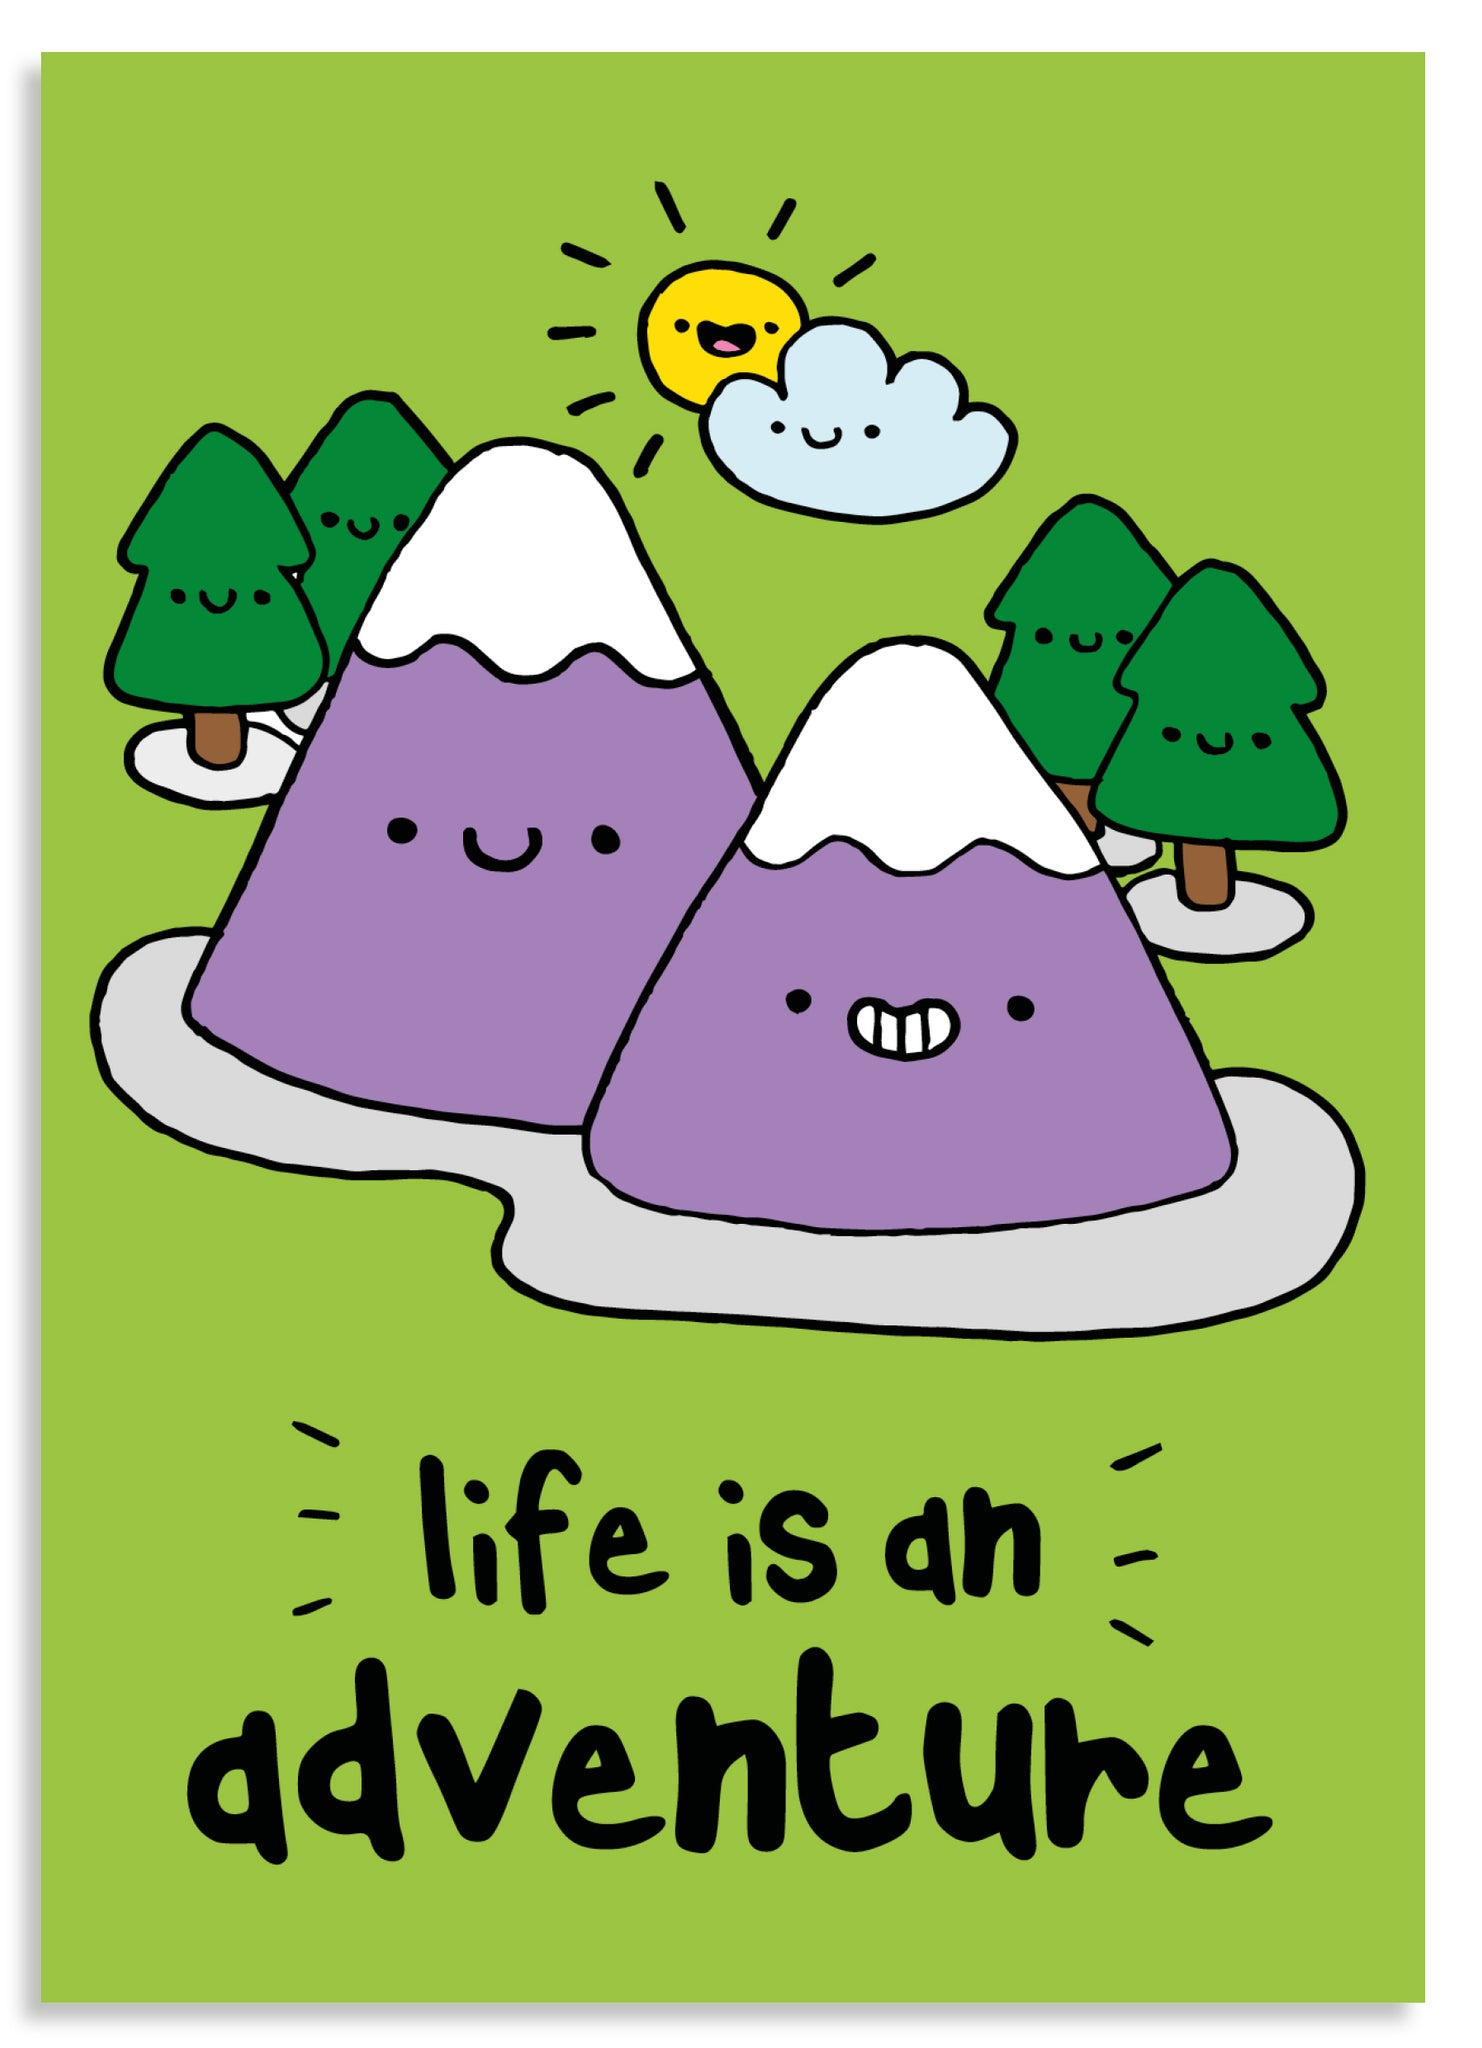 Life is an adventure postcard